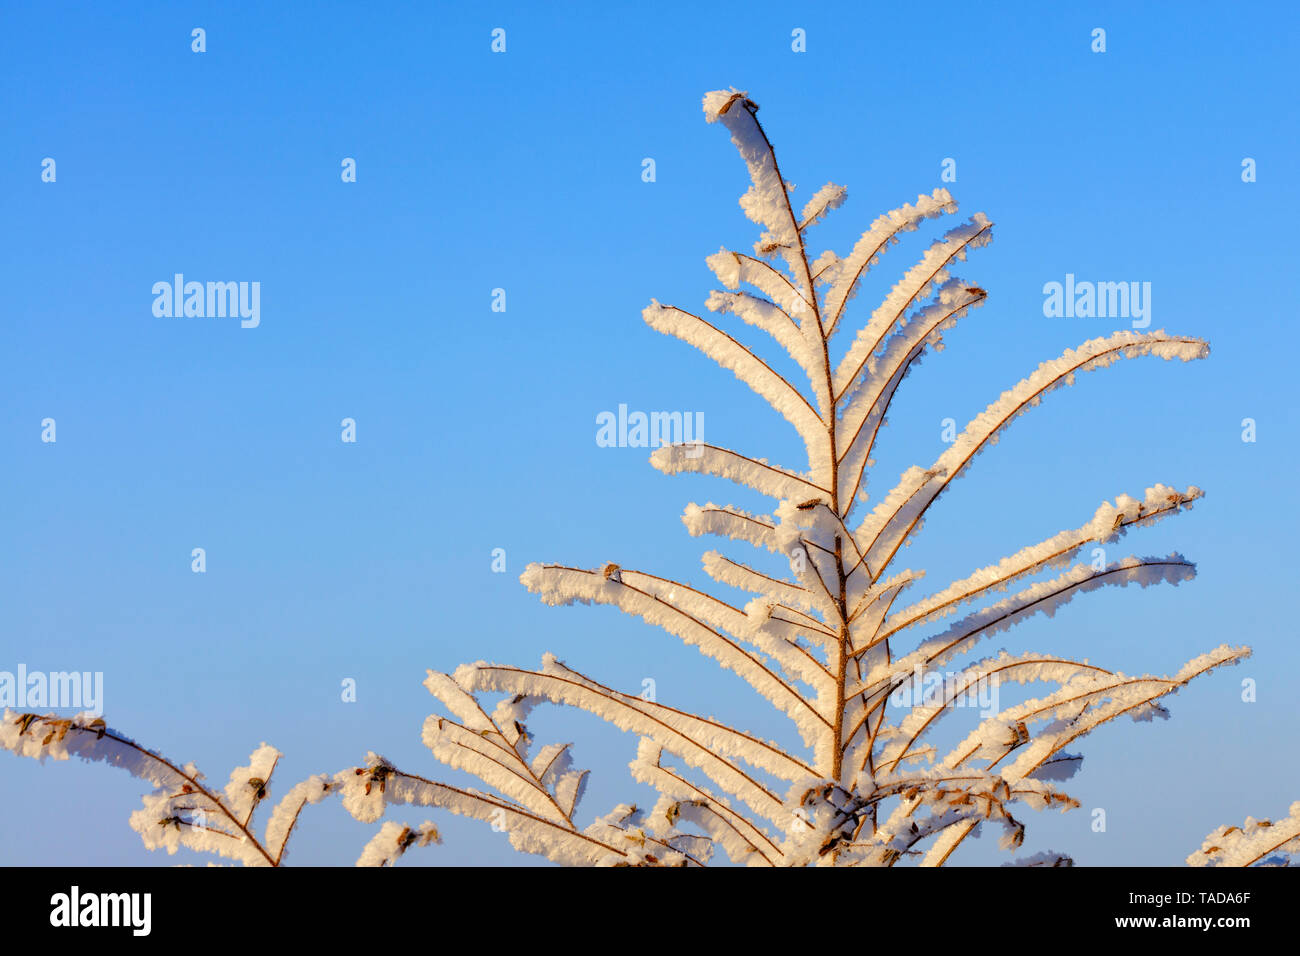 The branches of the bush in the frost, as if enchanted, are illuminated by gentle sunlight against a blue sky. - Stock Image